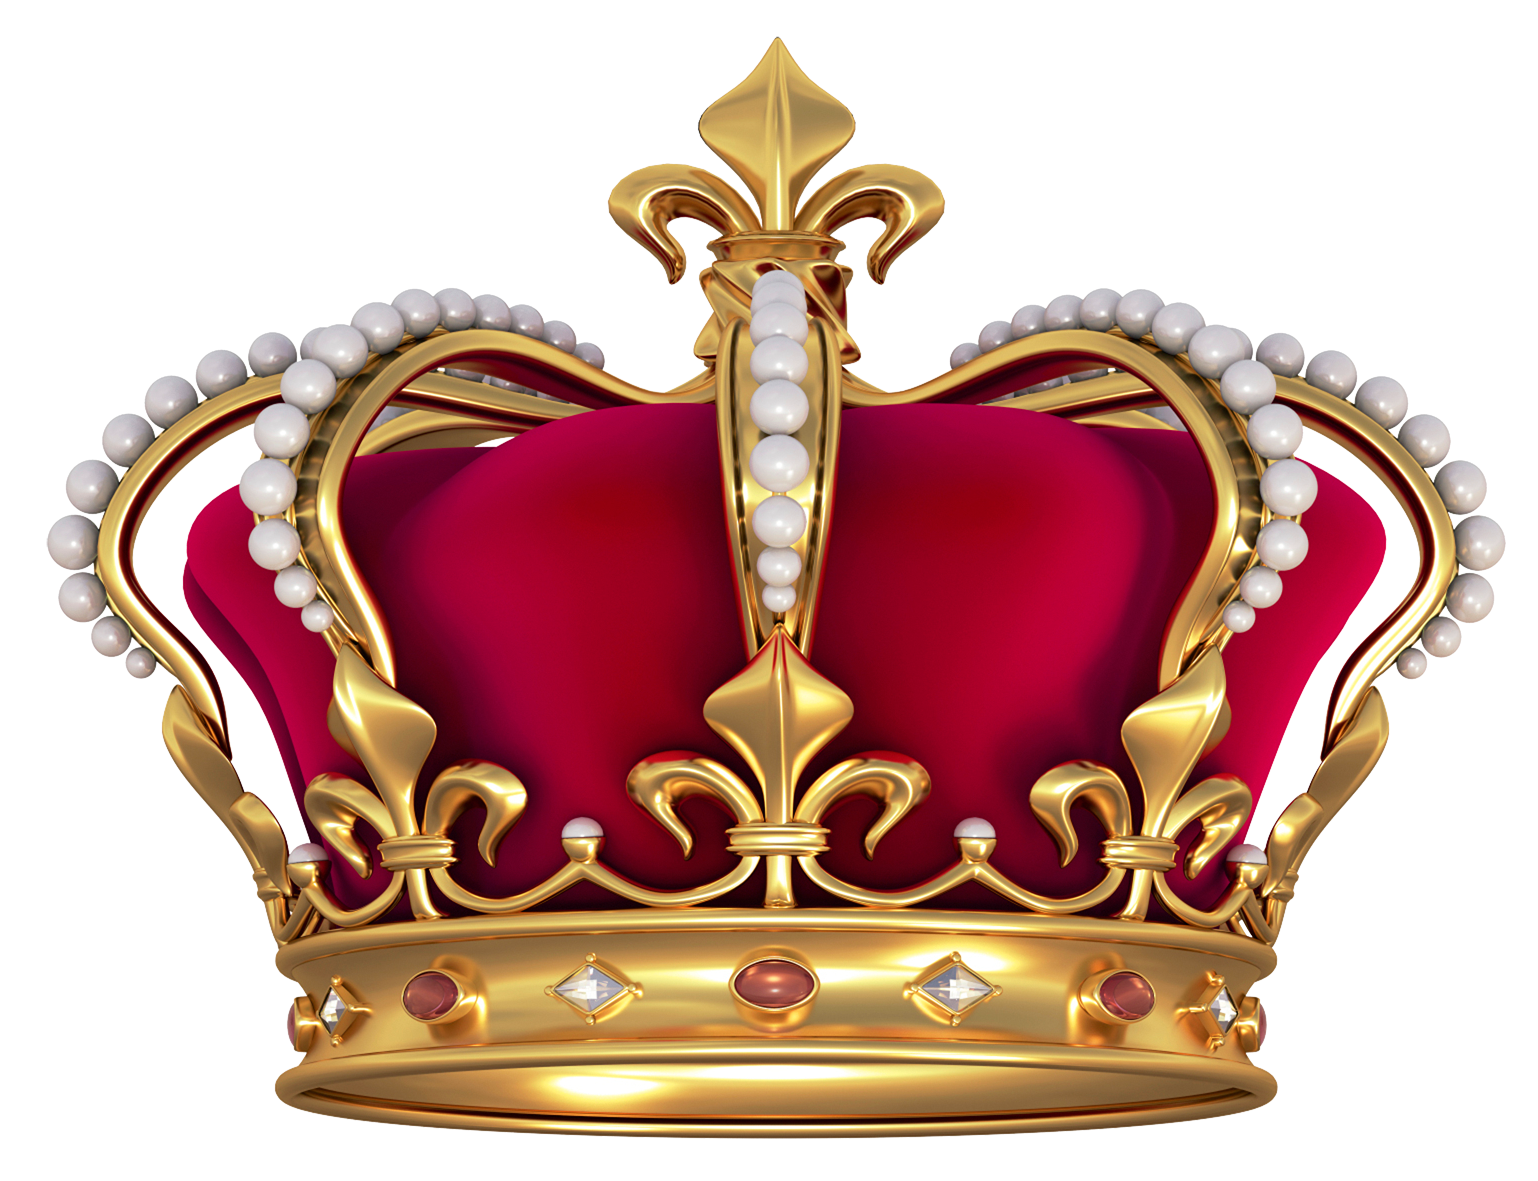 Famous with crown clipart banner freeuse stock Red Gold Crown with Pearls PNG Clipart Picture | Crafting - Regal ... banner freeuse stock